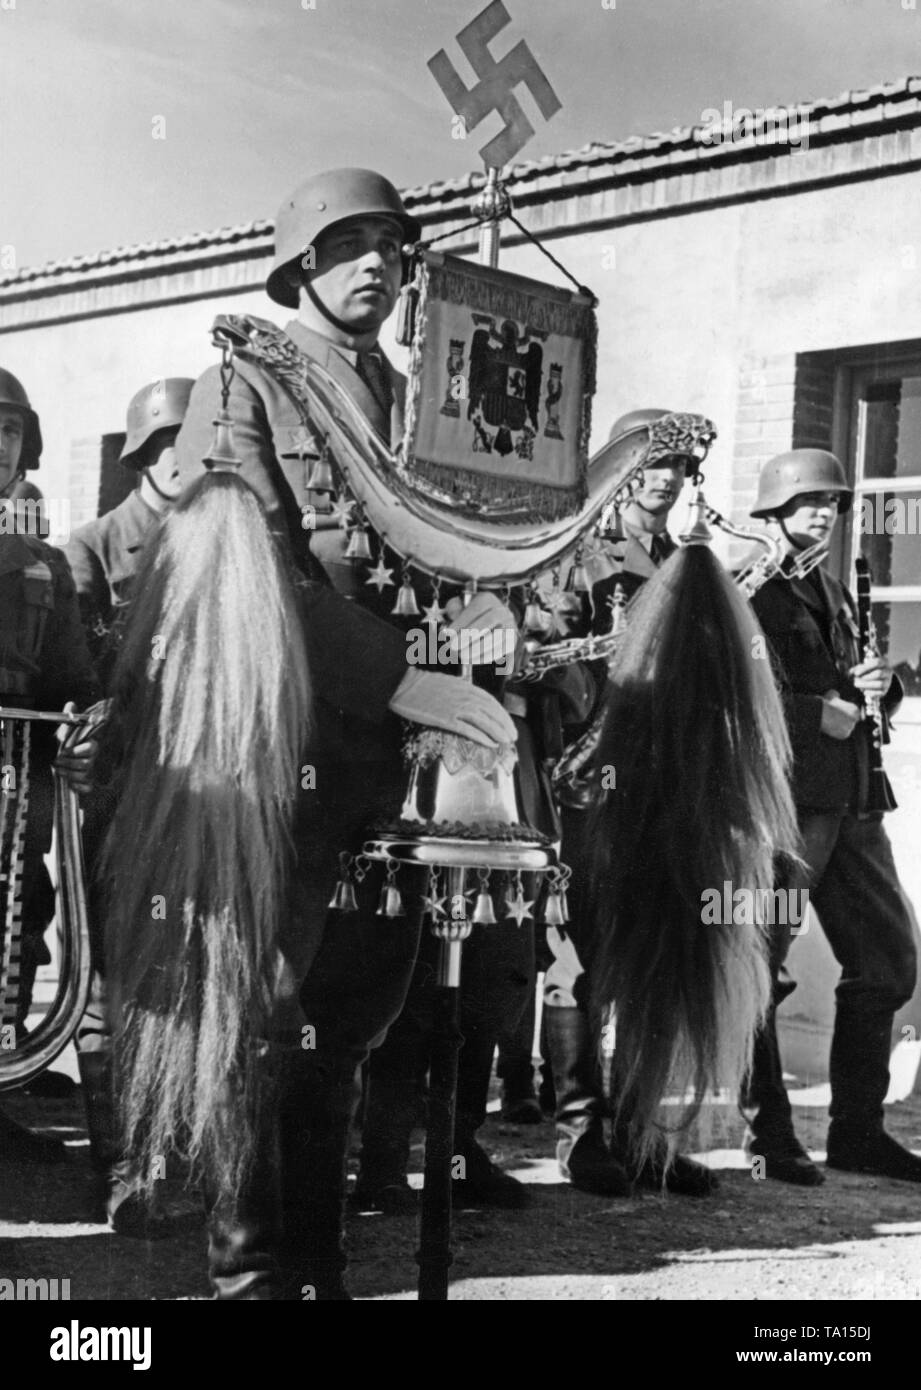 Photo of a member of the military band of the Condor Legion holding a Turkish crescent (decorated with a swastika and the Spanish national emblem) during the parade on the occasion of the celebration day of the Luftwaffe at the airfield of Saragossa, Aragon on March 1, 1939. - Stock Image